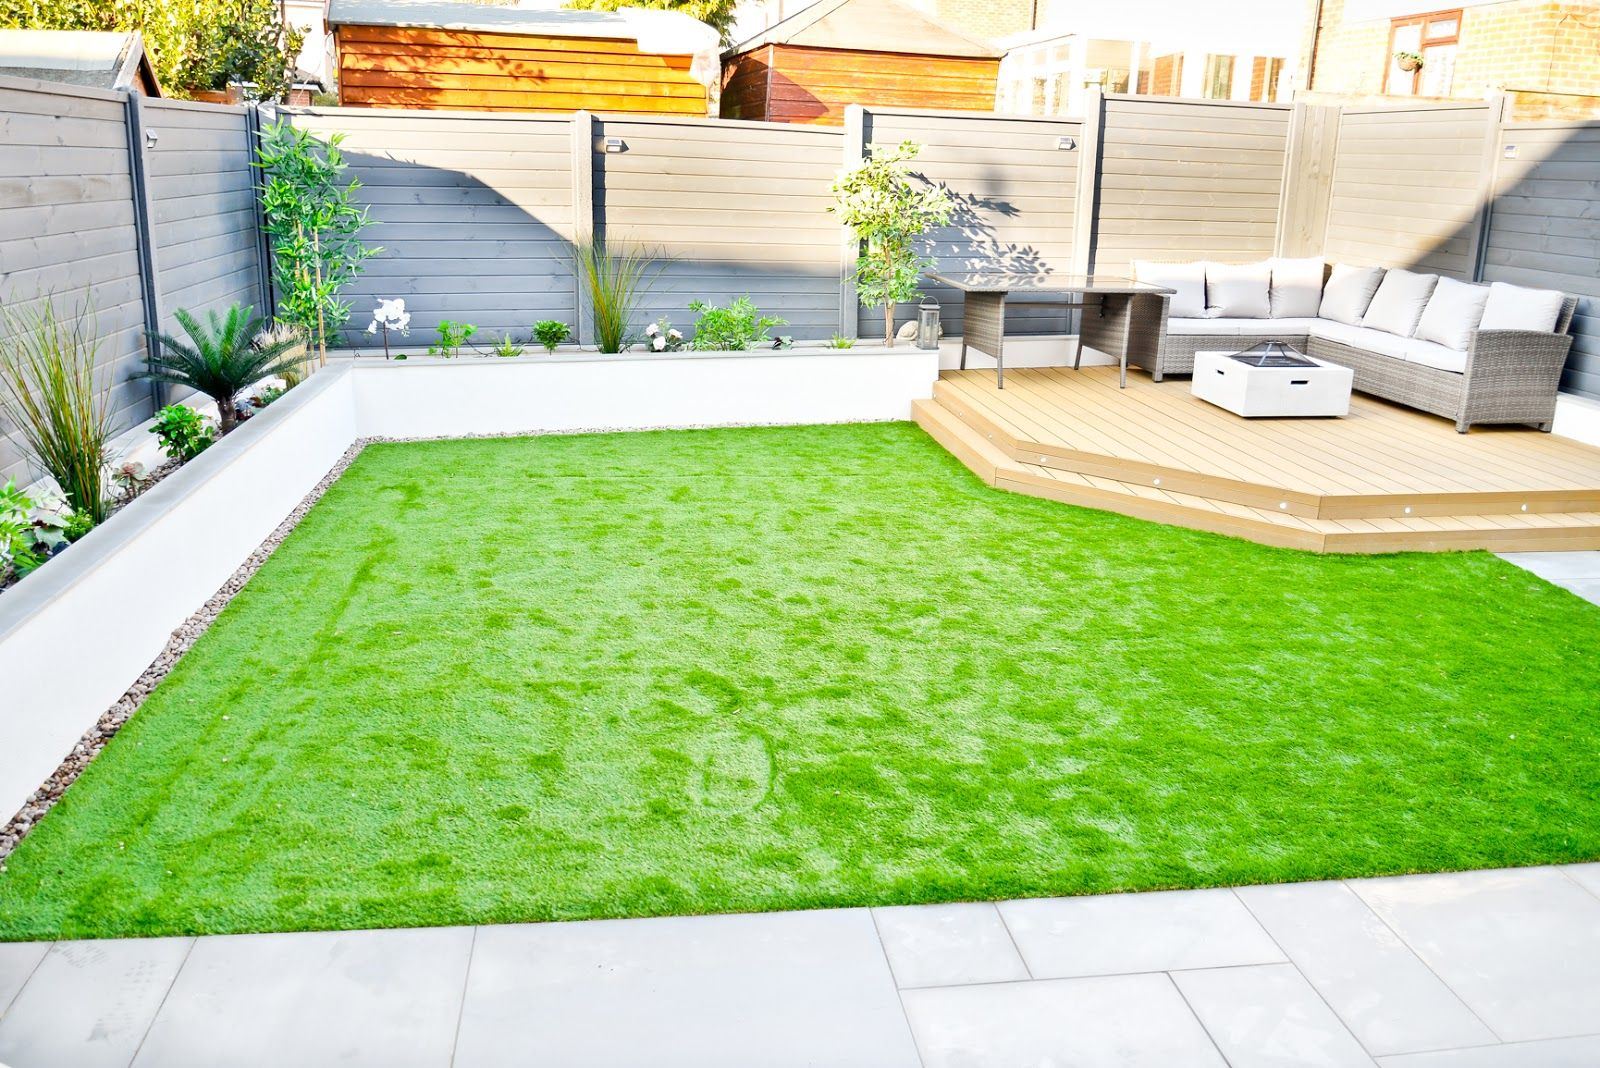 Our Back Garden Makeover - Before & After | Modern garden ... on Modern Back Garden Ideas id=57299